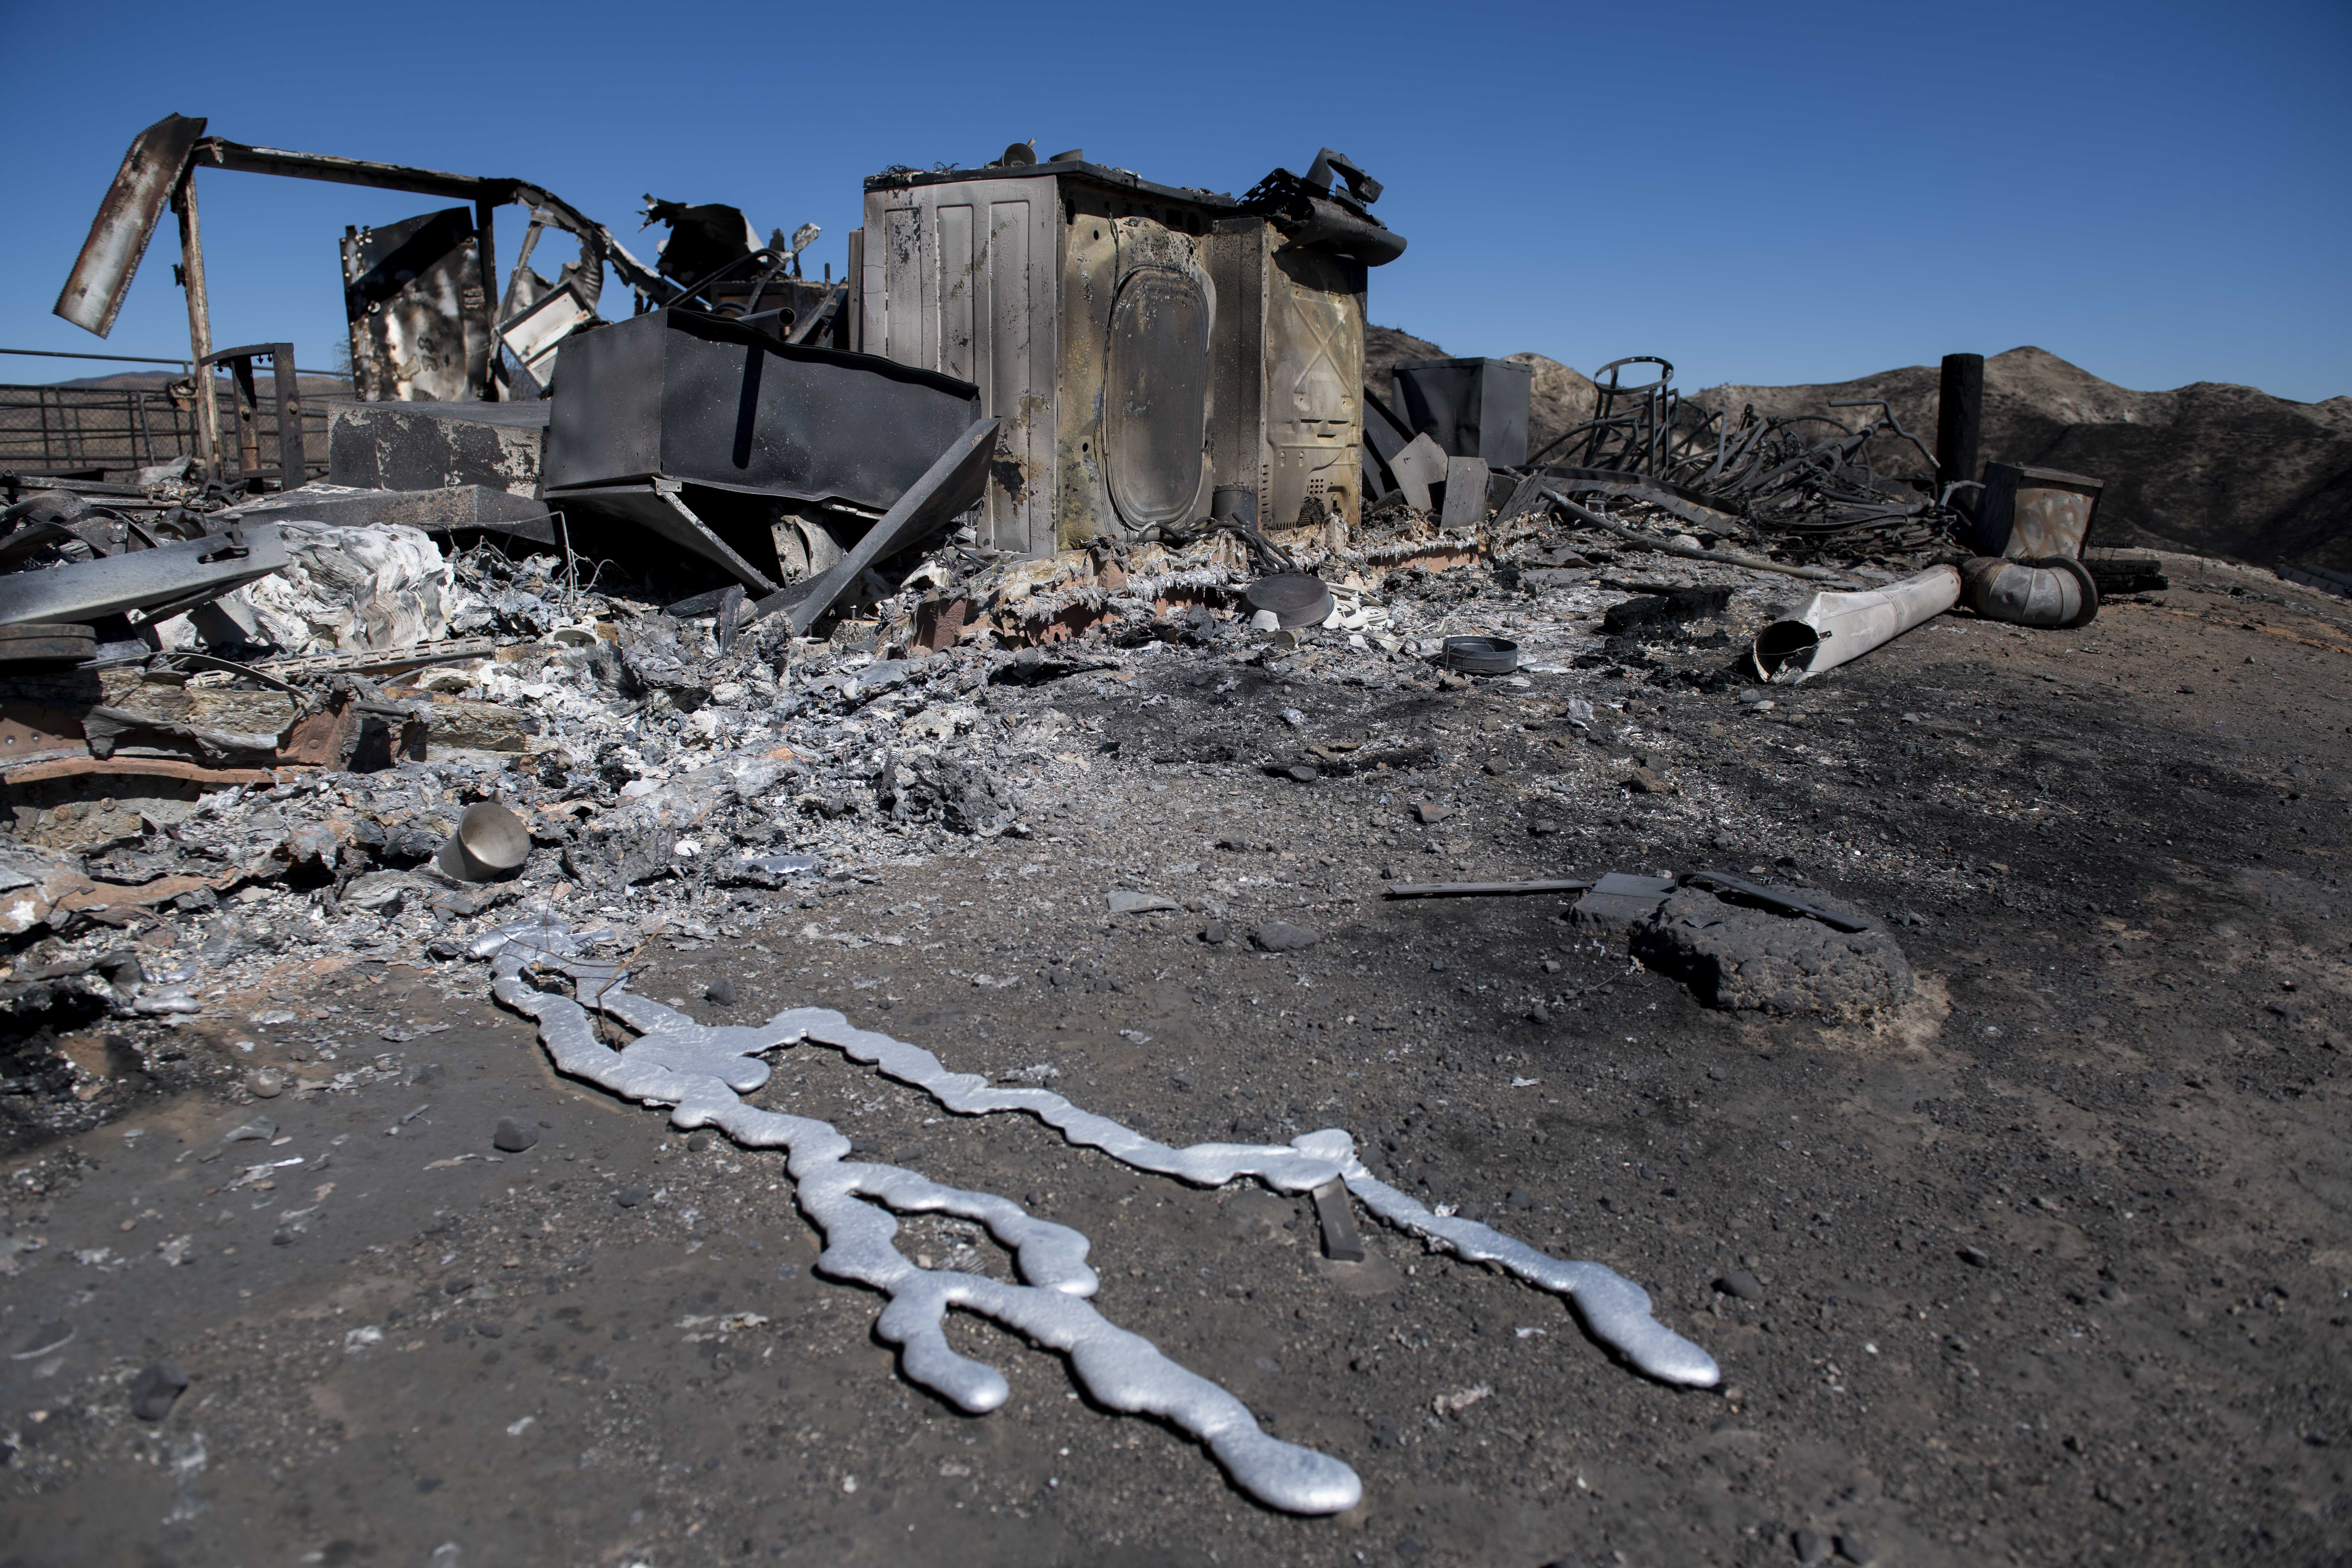 Debris from a hilltop home smolders after being burned by the Tick Fire Thursday Oct. 25 2019 in Santa Clarita Calif. An estimated 50,000 people were under evacuation orders in the Santa Clarita area north of Los Angeles as hot dry Santa Ana winds